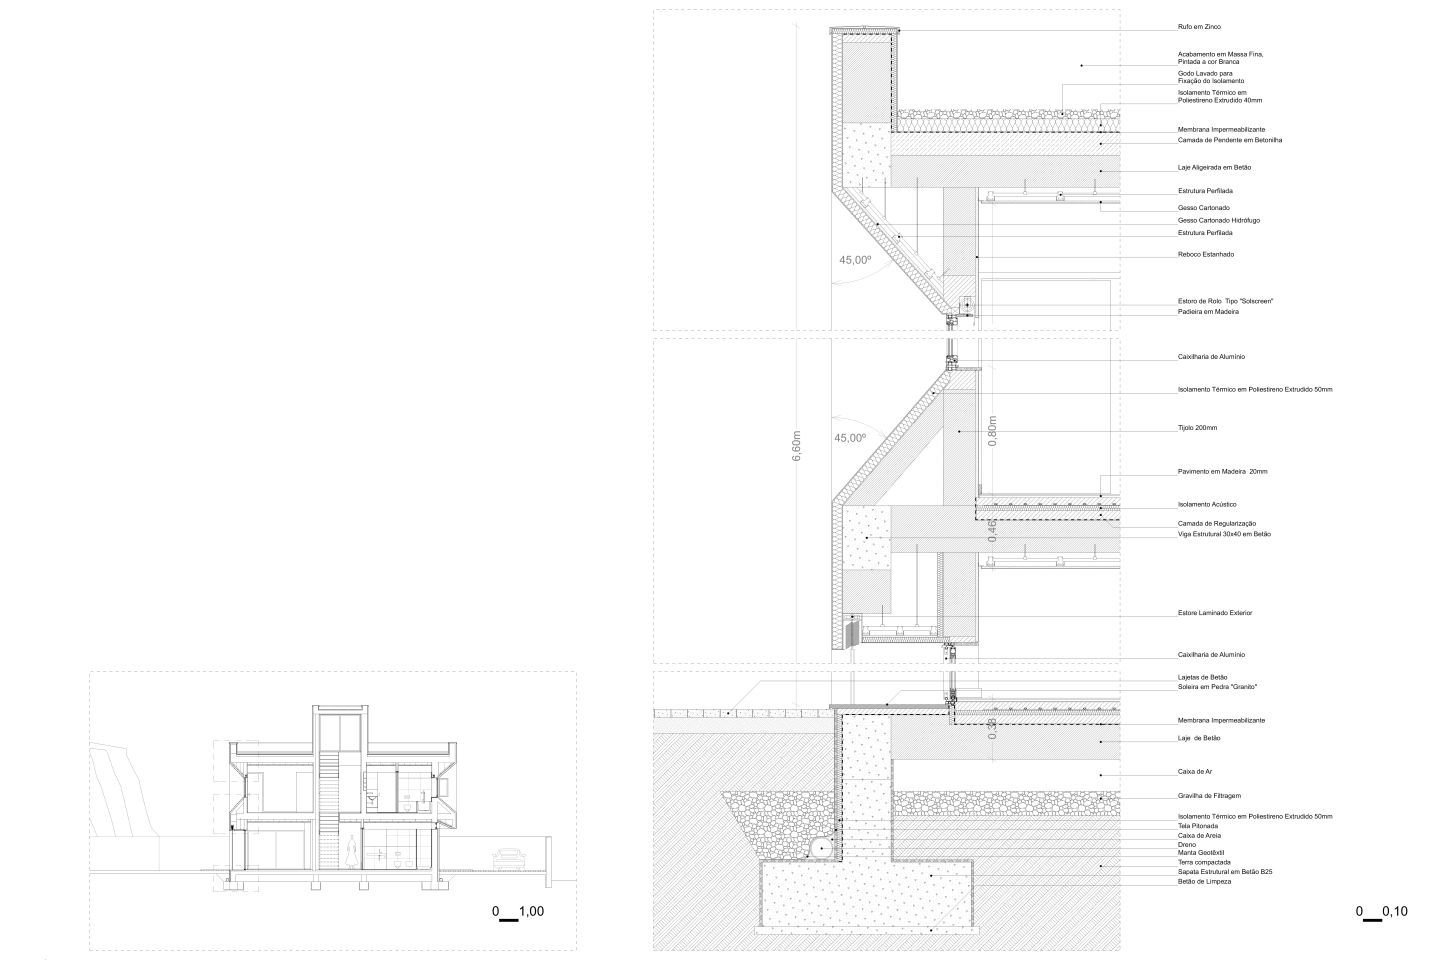 Located in a context of urban expansion of a residential area of Mirandela, this plot had a set of well-defined rules regarding its site plan, setbacks and mass. Given this, the design quickly developed into a compact and linear volume organized on a s...